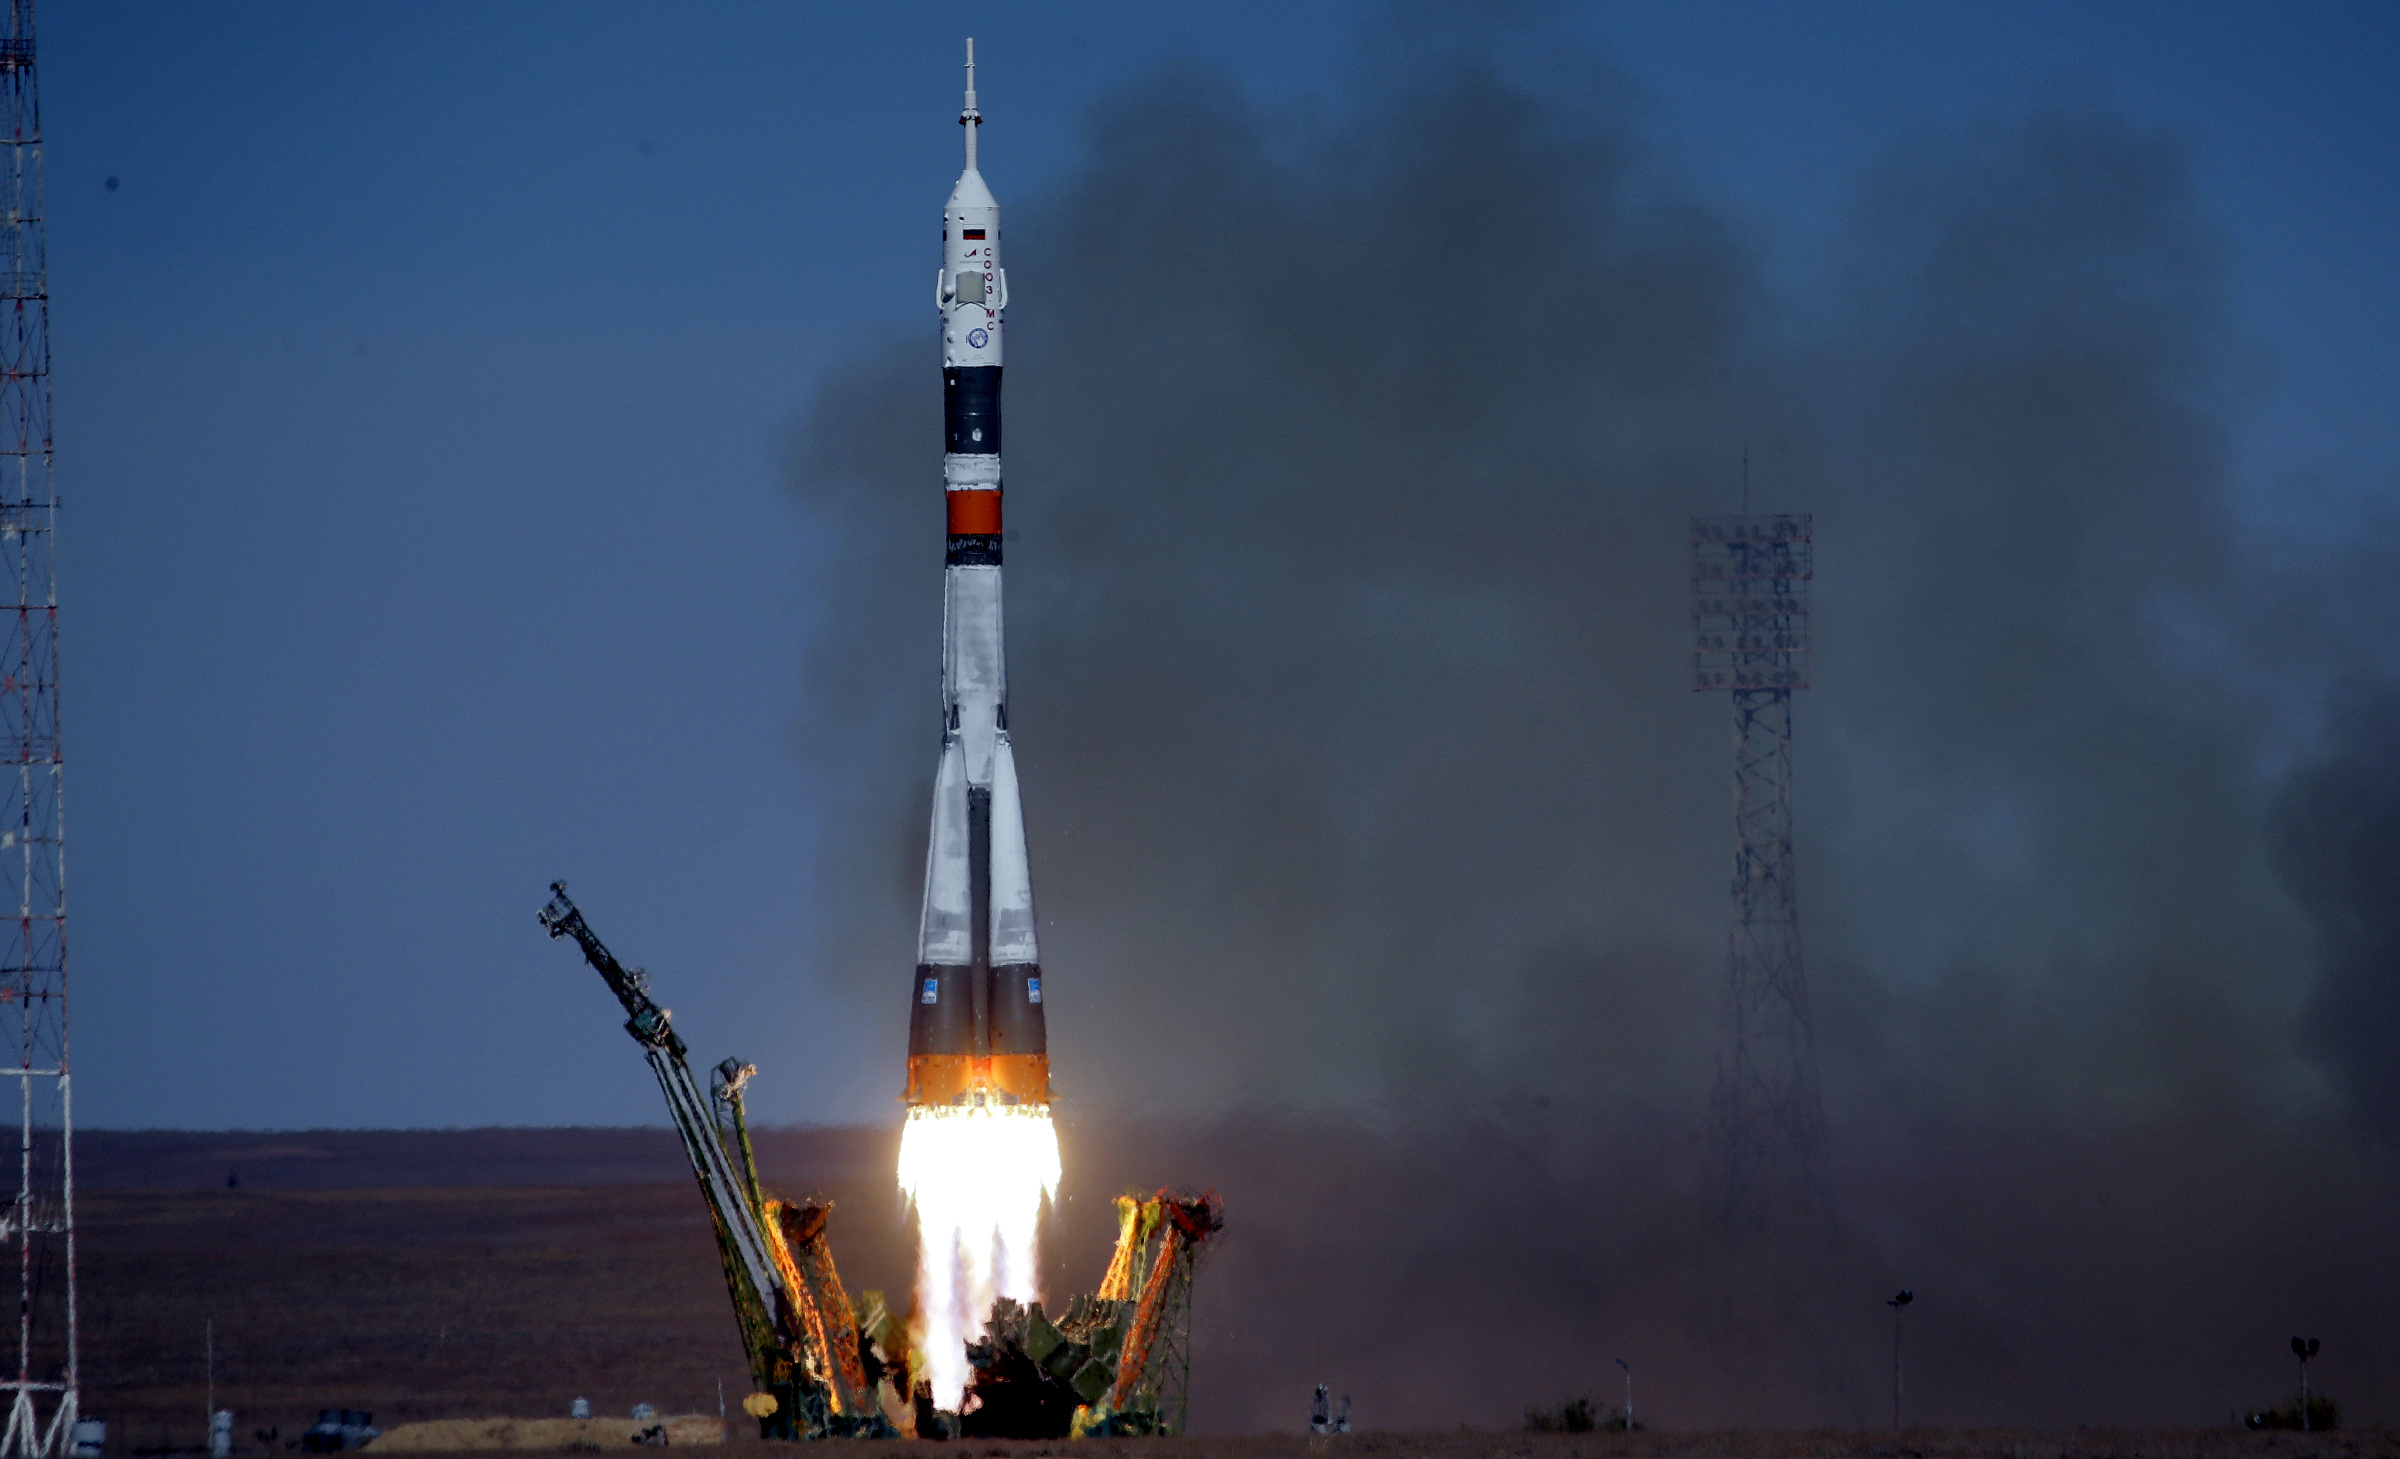 The Soyuz-FG rocket booster with Soyuz MS-10 space ship carrying a new crew to the International Space Station, ISS, blasts off at the Russian leased Baikonur cosmodrome, Kazakhstan, Thursday, Oct. 11, 2018. Two astronauts from the U.S. and Russia are making an emergency landing after a Russian booster rocket carrying them into orbit to the International Space Station has failed after launch.